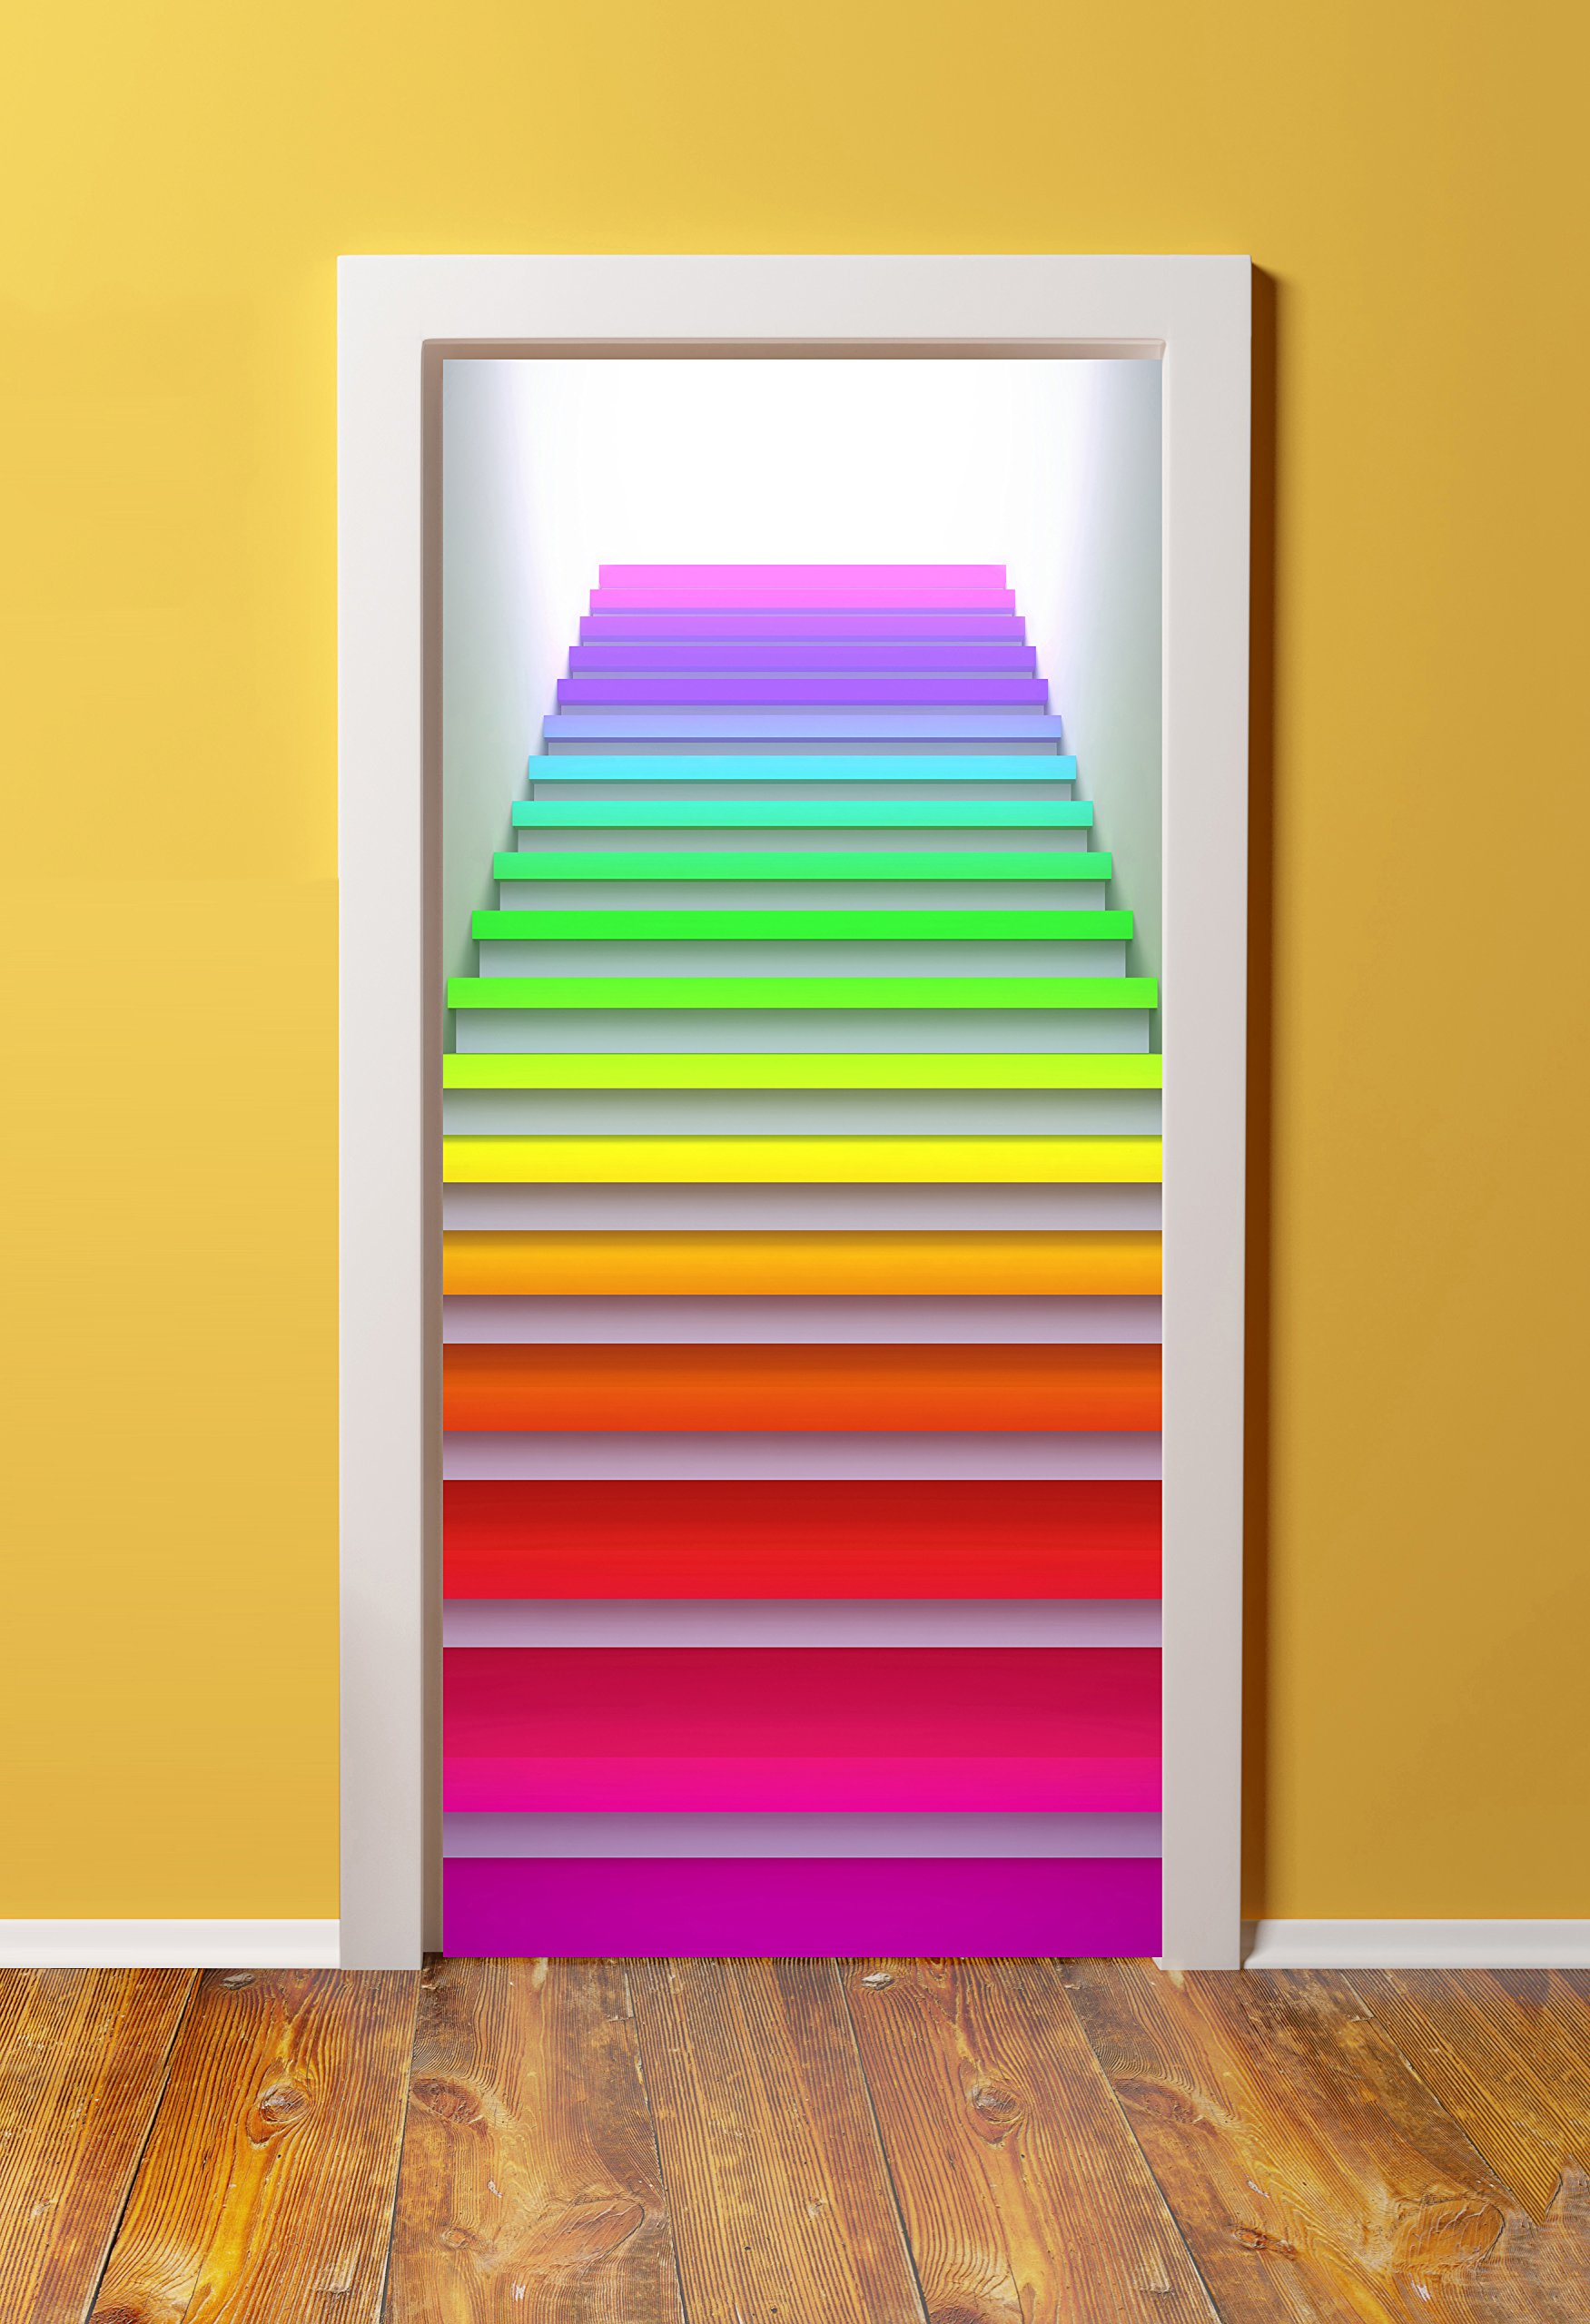 WindowPix 36x80 3D Door (Sticker) Murals - PEEL & STICK - Made from tear-proof, washable, durable material Neon stairs to the future